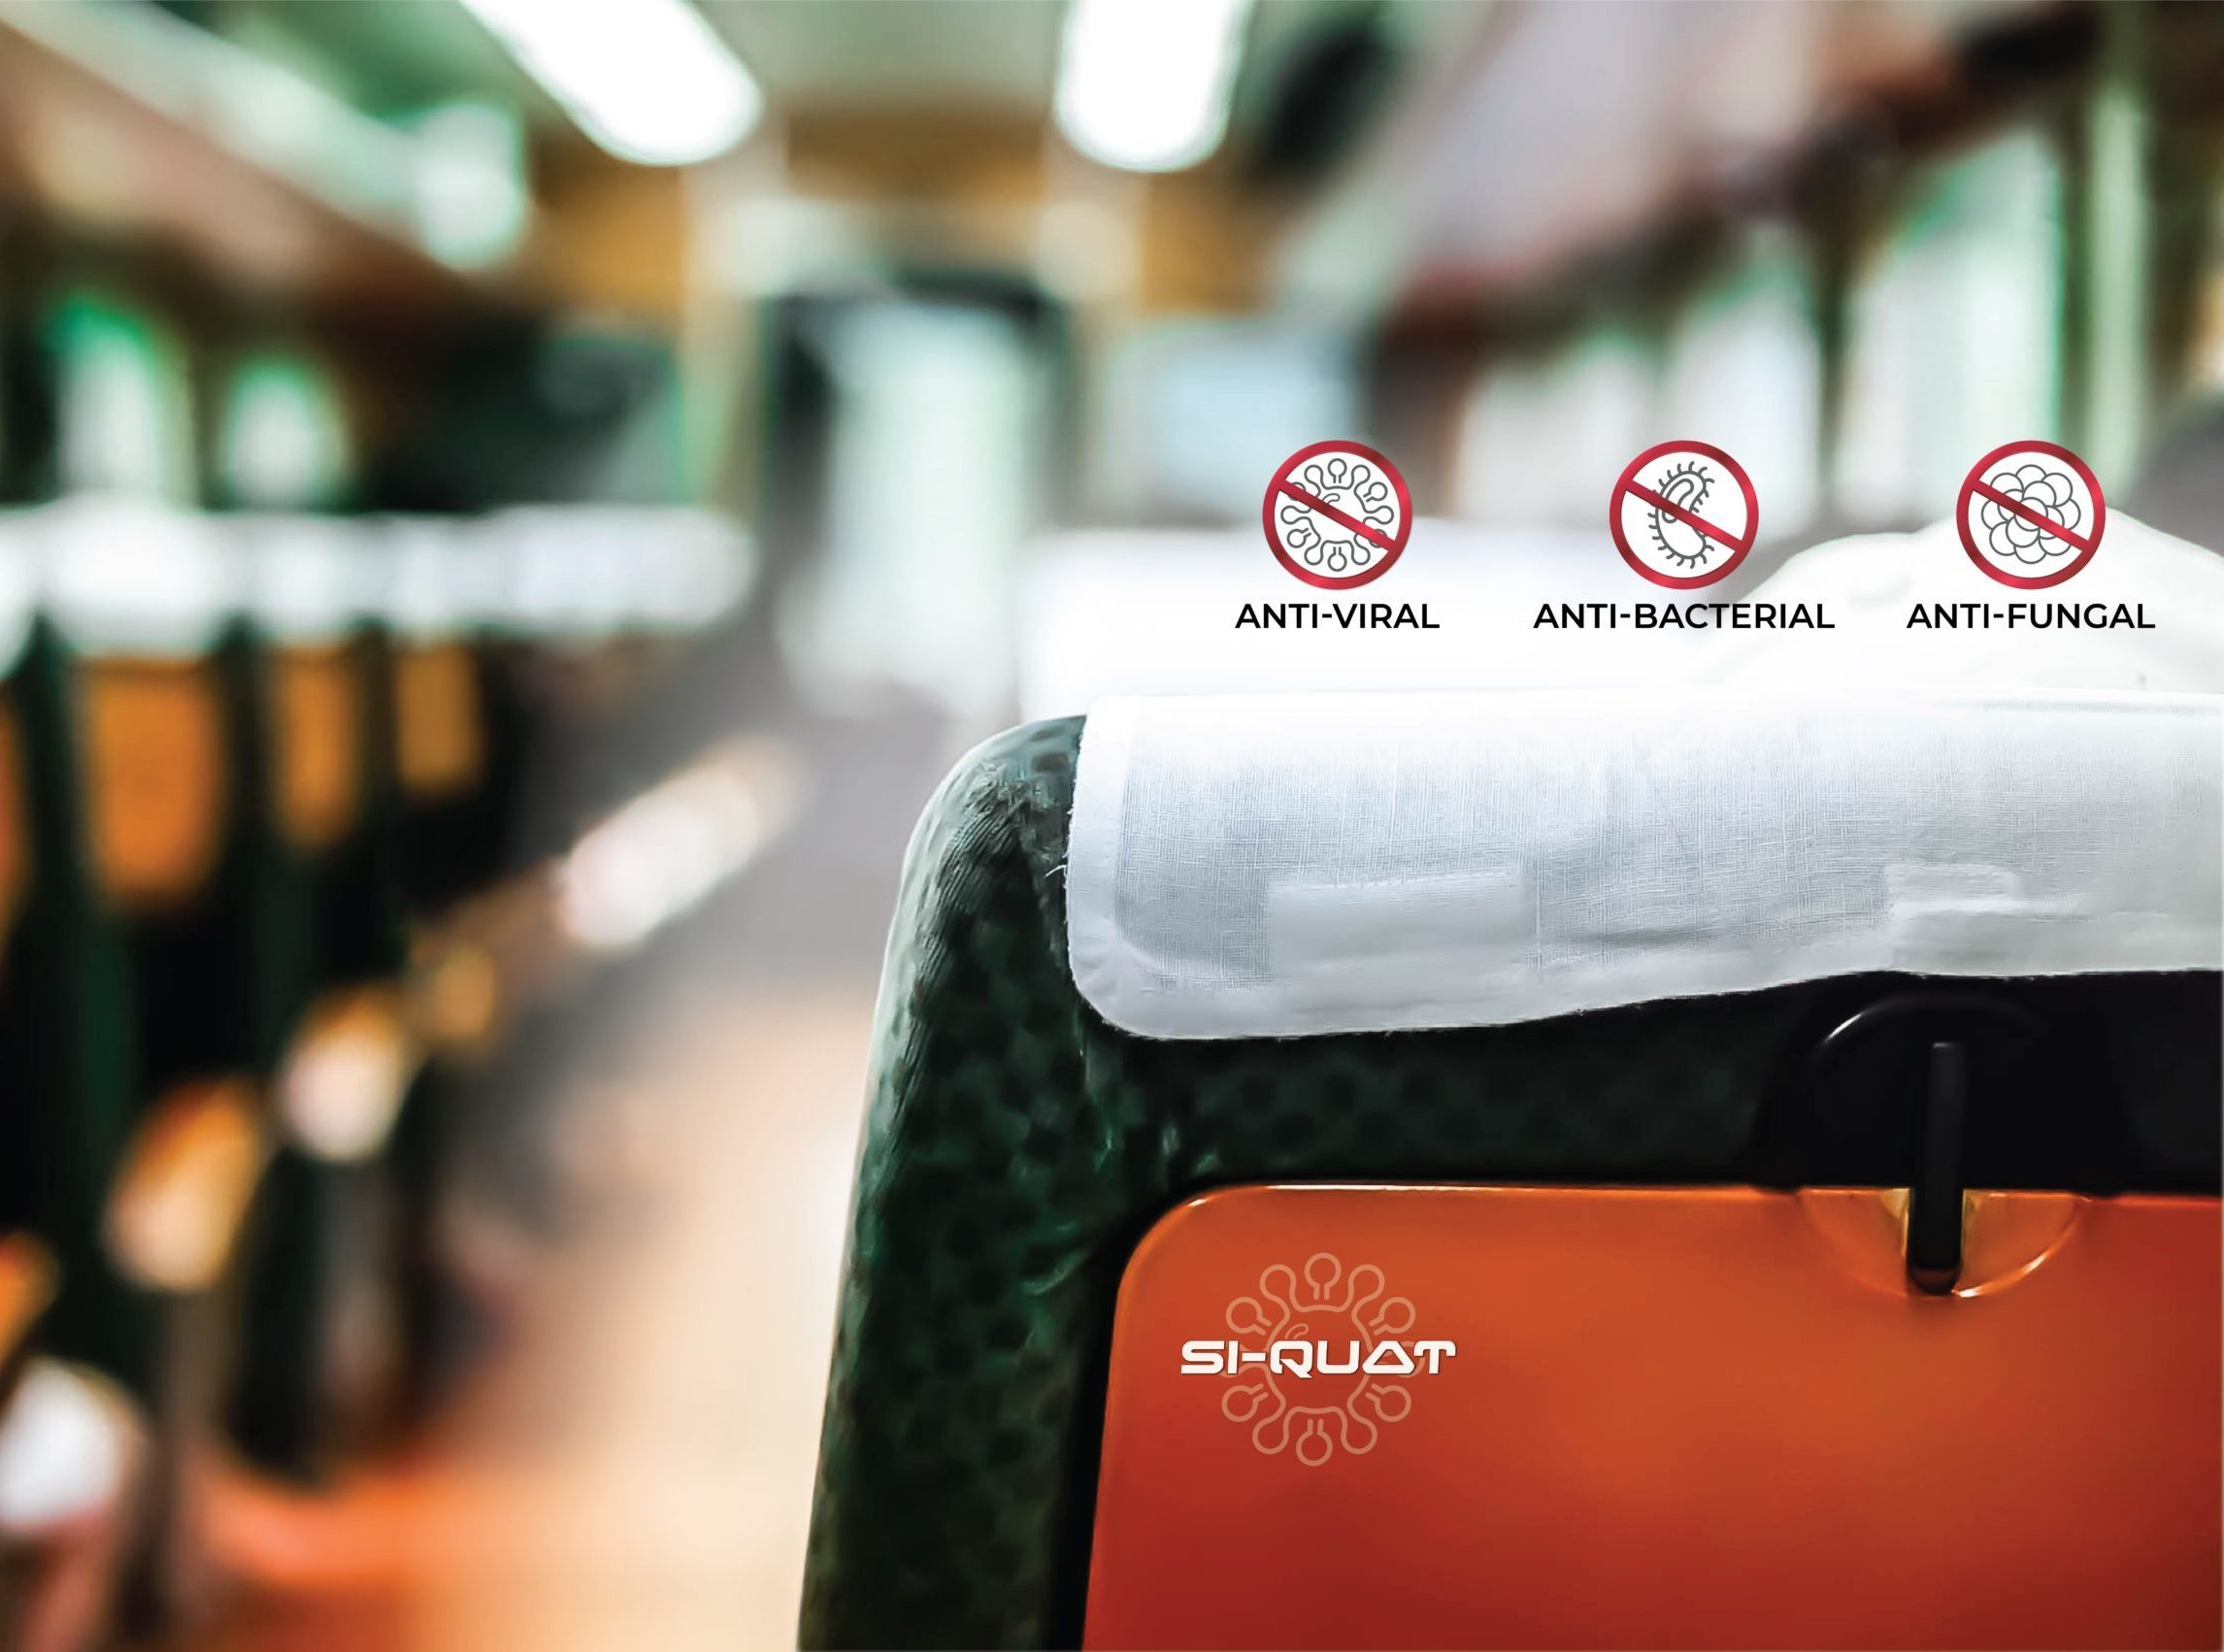 AFFIX Labs' anti-microbial surface coating is being deployed to protect public transport interiors from contagious microbes such as the SARS-COV-2 virus, by Kiel, a global leader in the manufacture of transportation seating